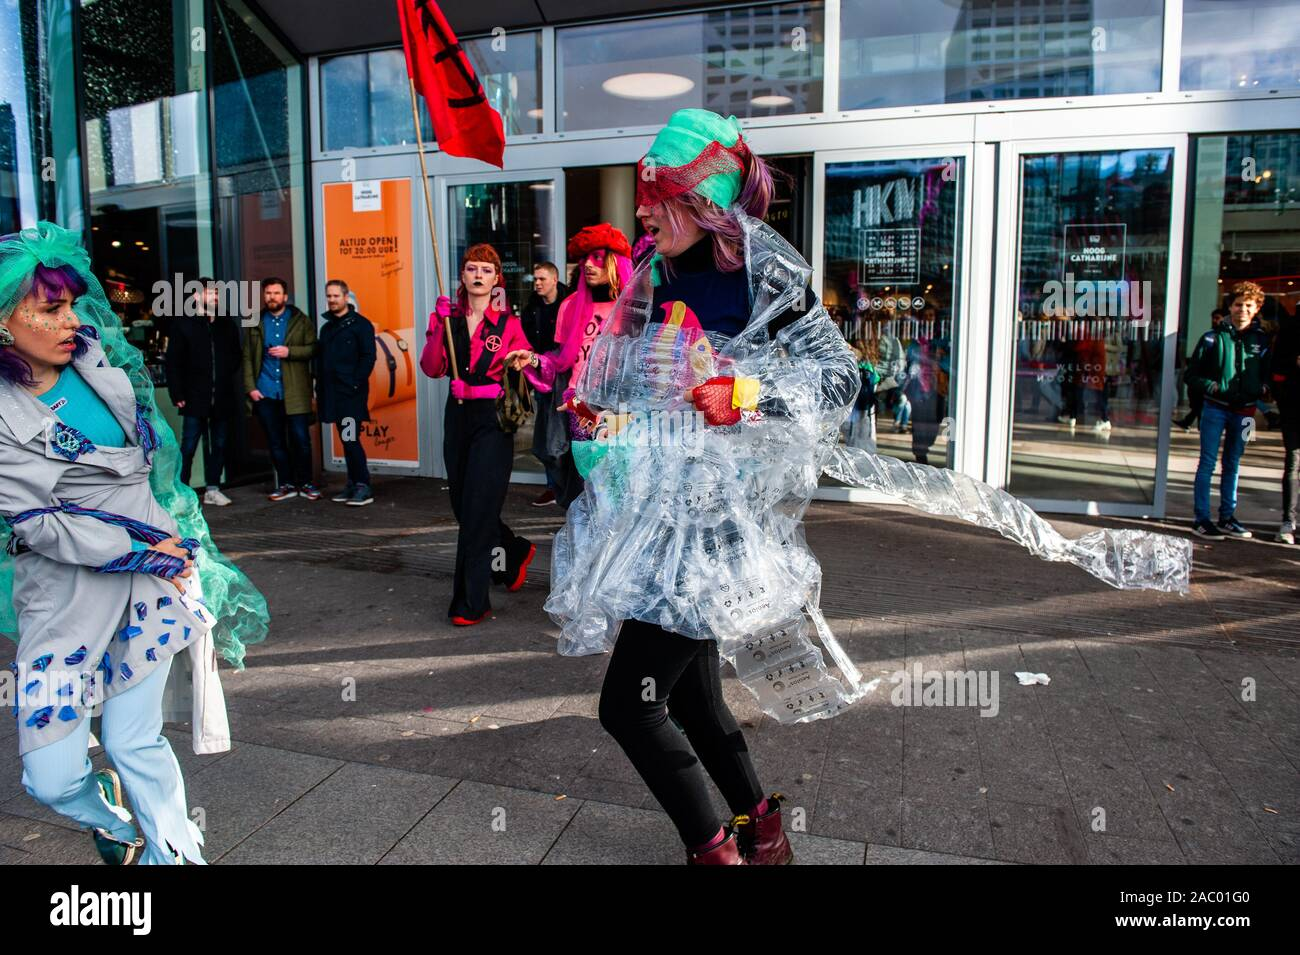 Xr Models Coming Out From The Mall Before The Show In Utrecht Extinction Rebellion Nederland Organised